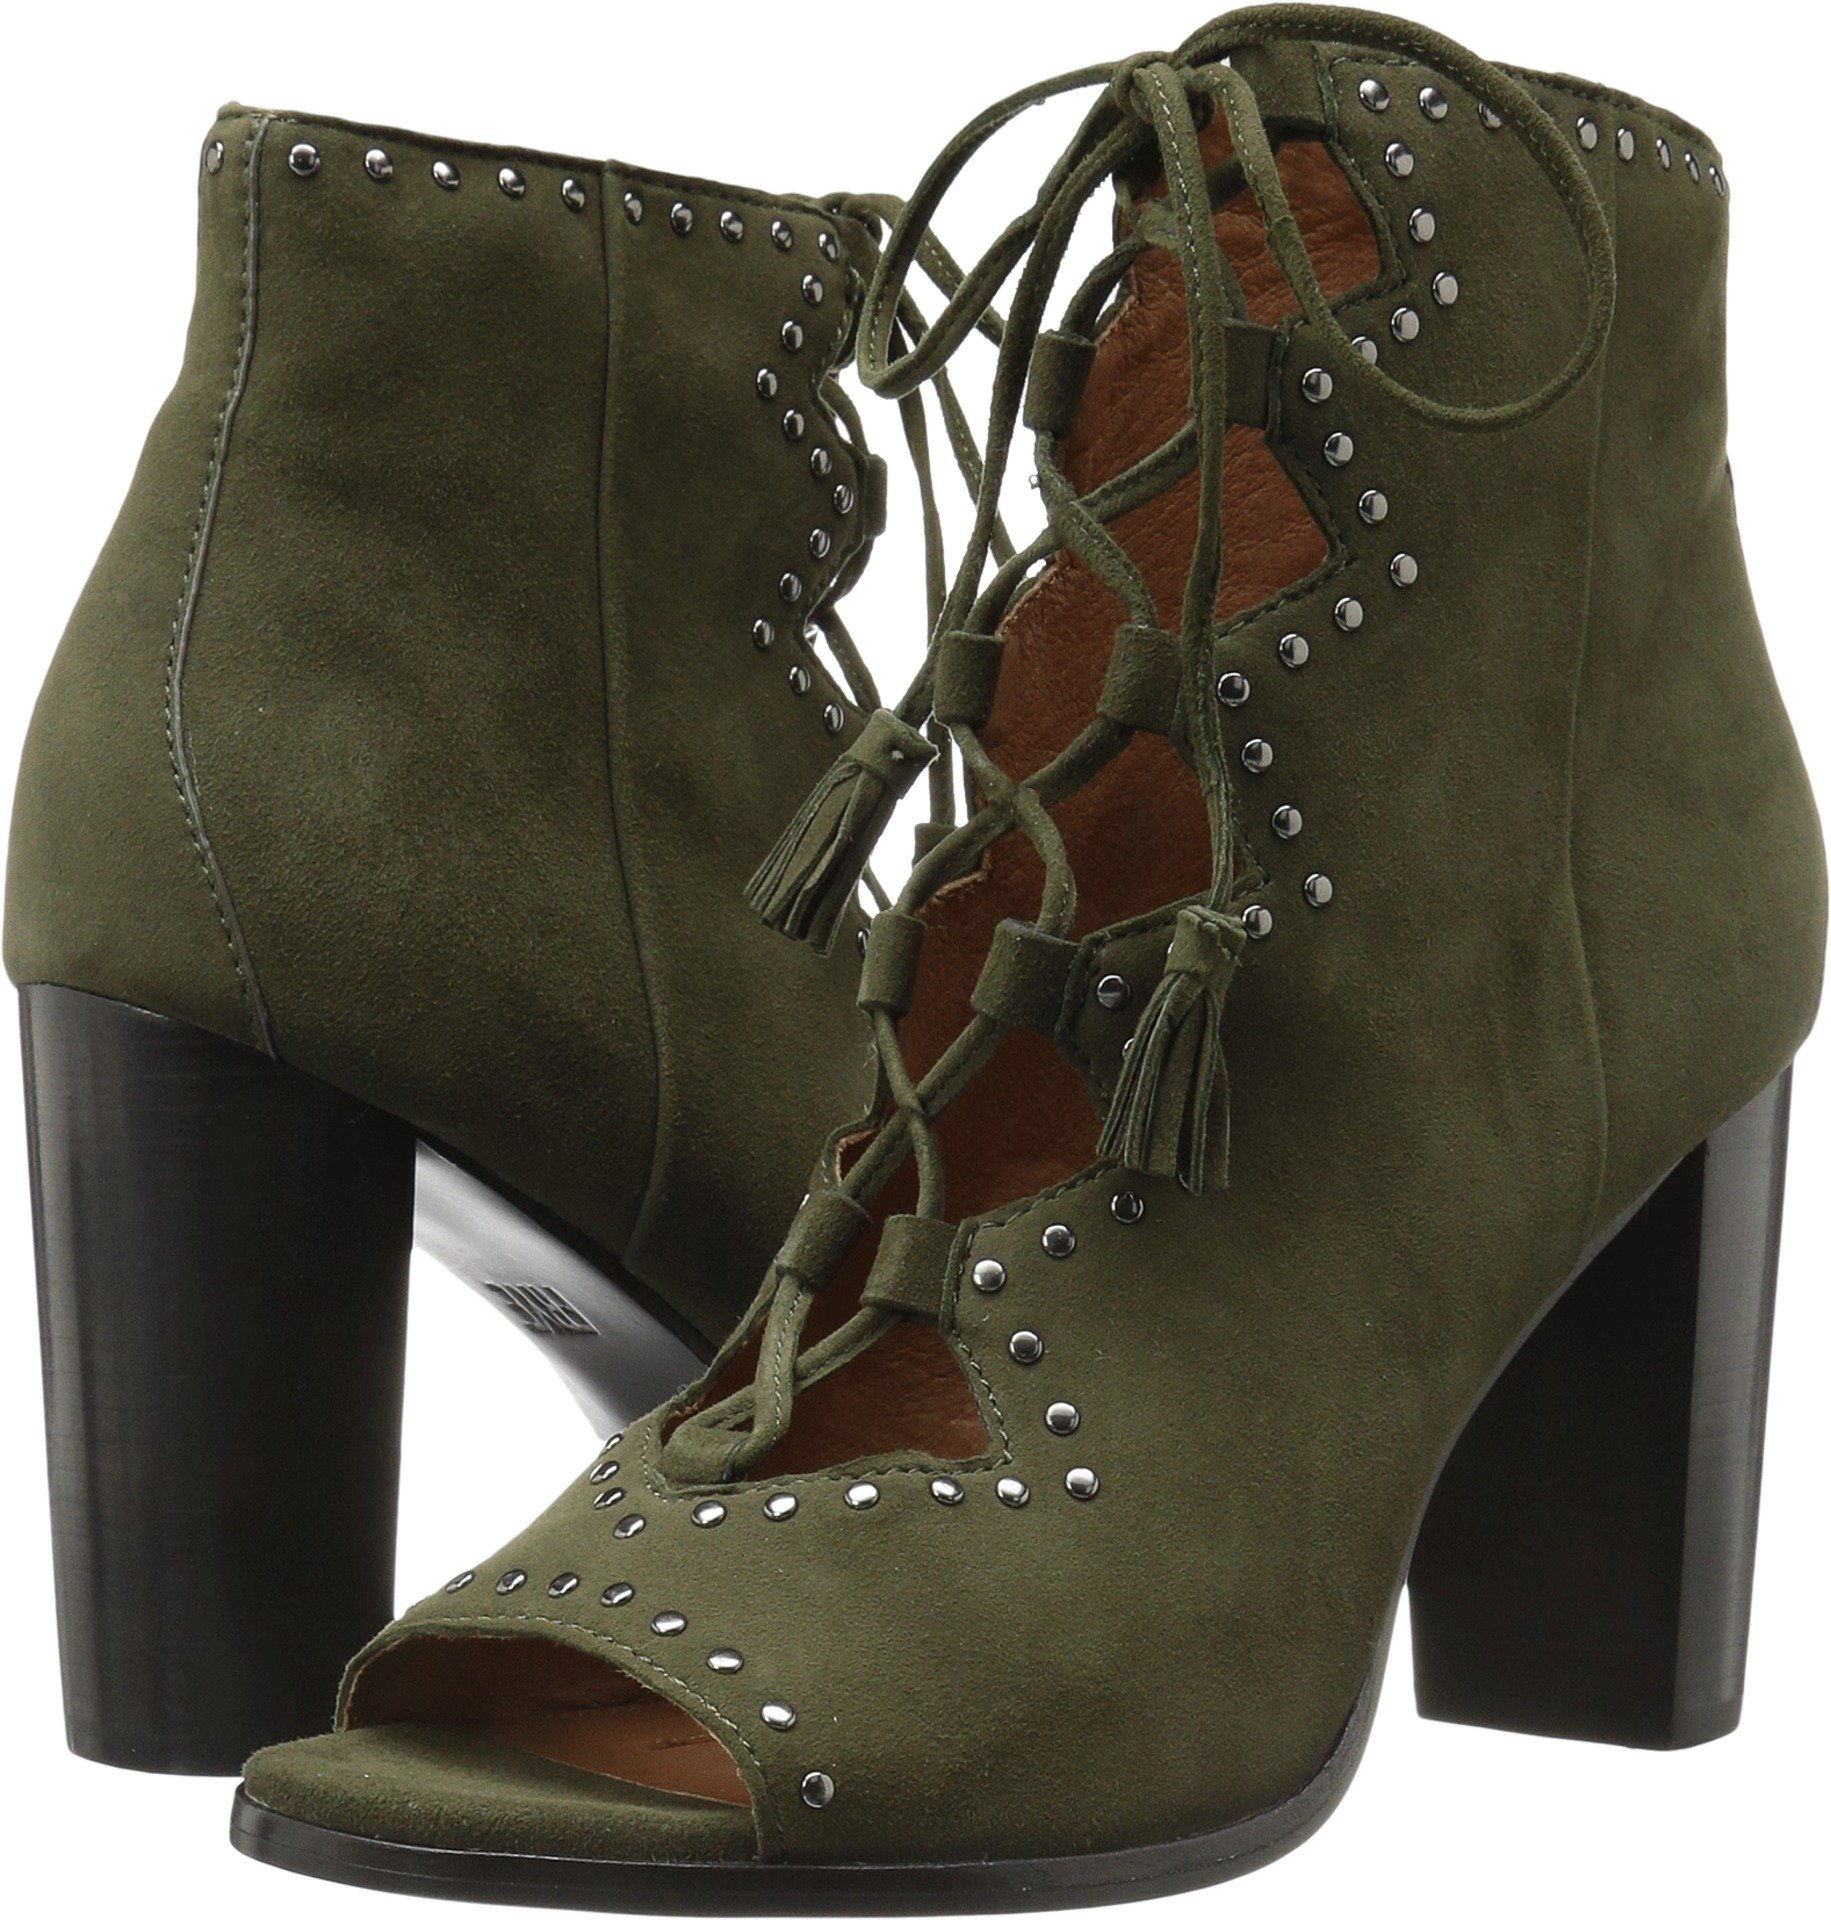 FRYE Women's Gabby Ghillie Stud Boot, Forest Suede, 6.5 M US